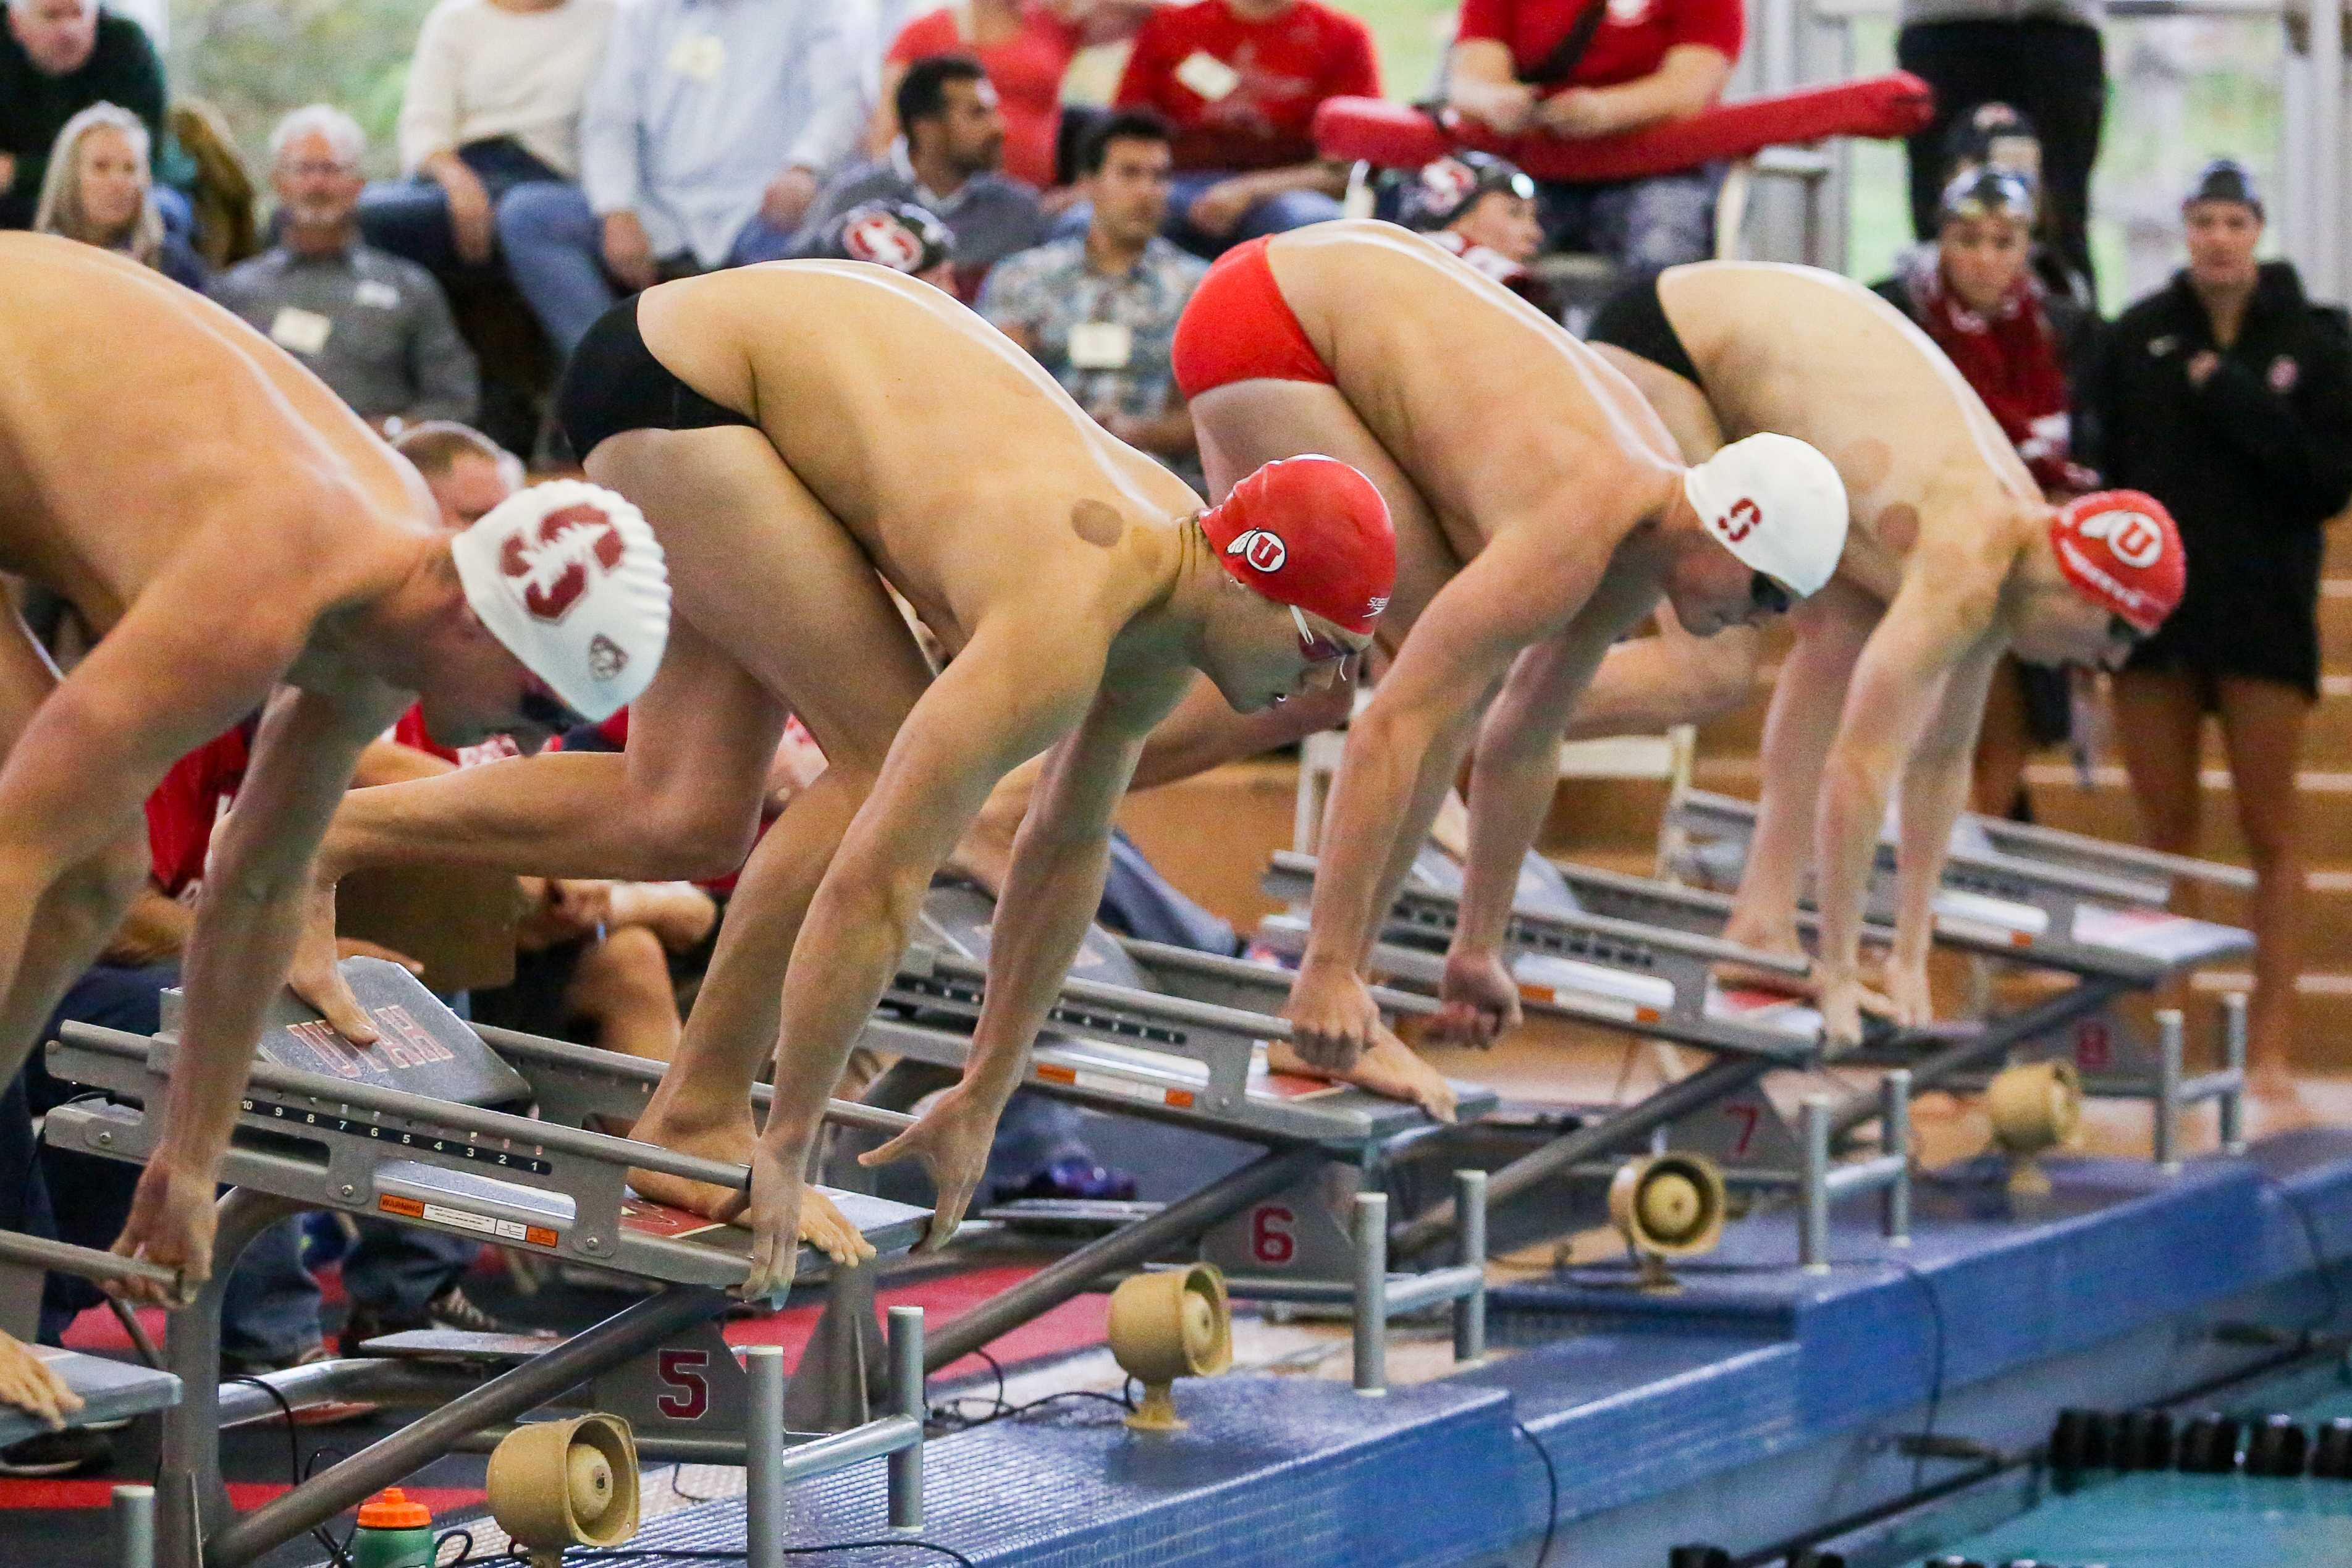 Sophomore Rahiti De Vos starting out of the blocks as the Utah Men and Women's Swim and Dive Team take on the Stanford Cardinals at the Ute Natatorium in Salt Lake City, UT on Friday, Oct. 20, 2017.  (Photo by Curtis Lin/ Daily Utah Chronicle)